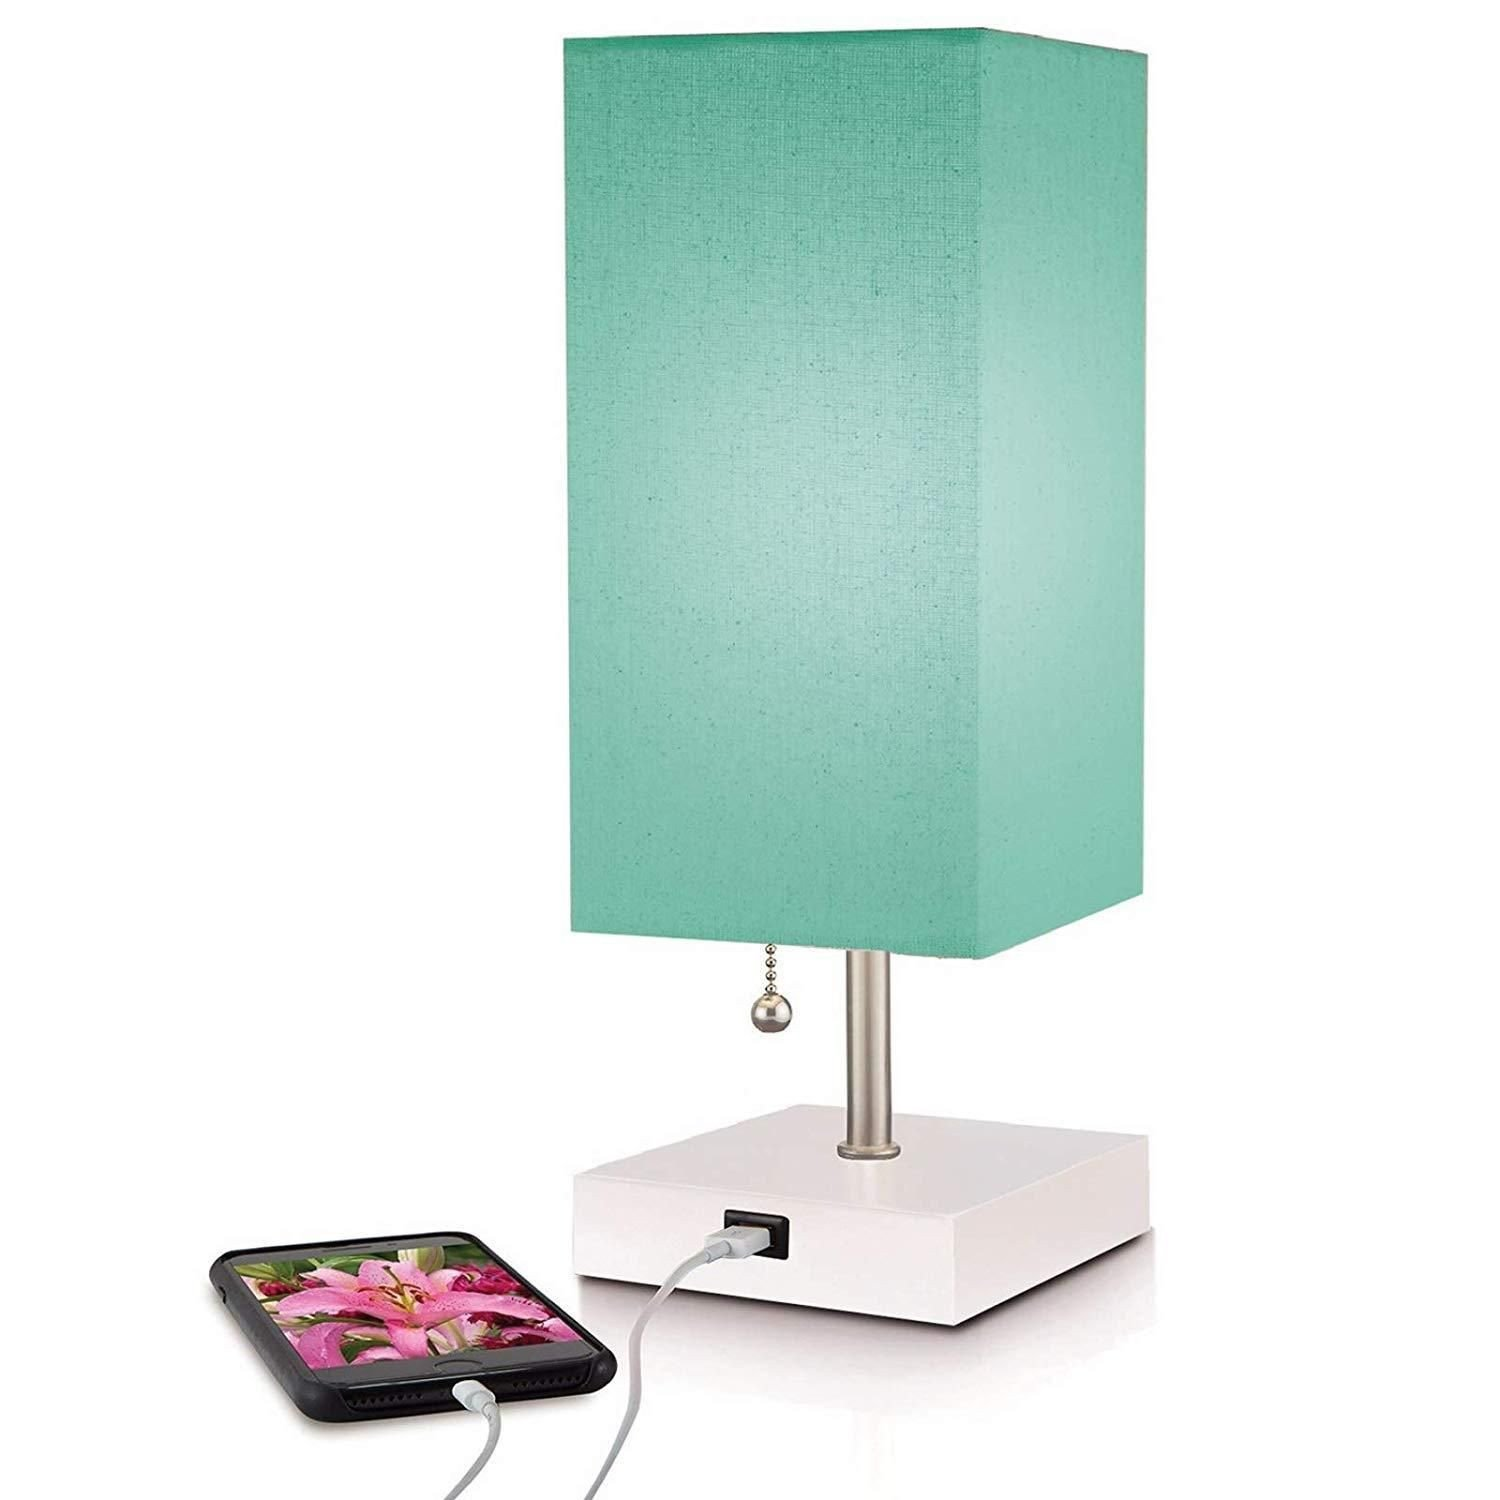 Reading Lamps for Bedroom Fresh Modern Teal Aqua Lamp Usb Port W New Improved 2 and Charger